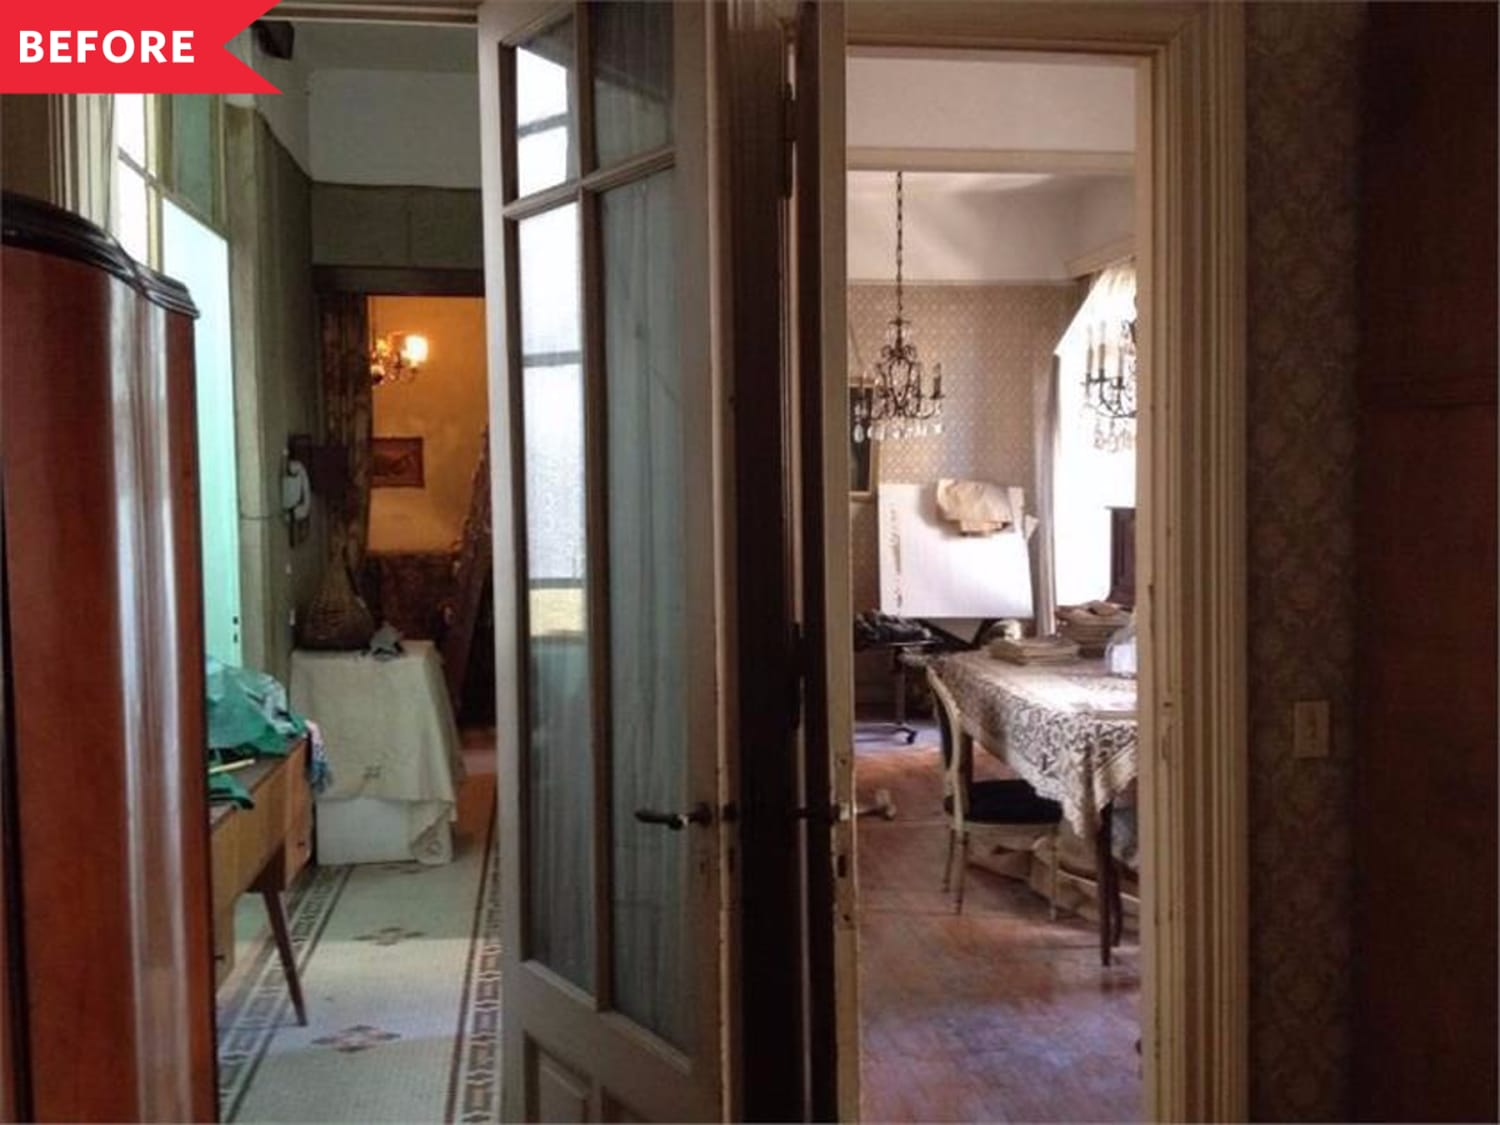 Before & After: A Buenos Aires Apartment Is Restored to Its Former Beauty, and Then Some